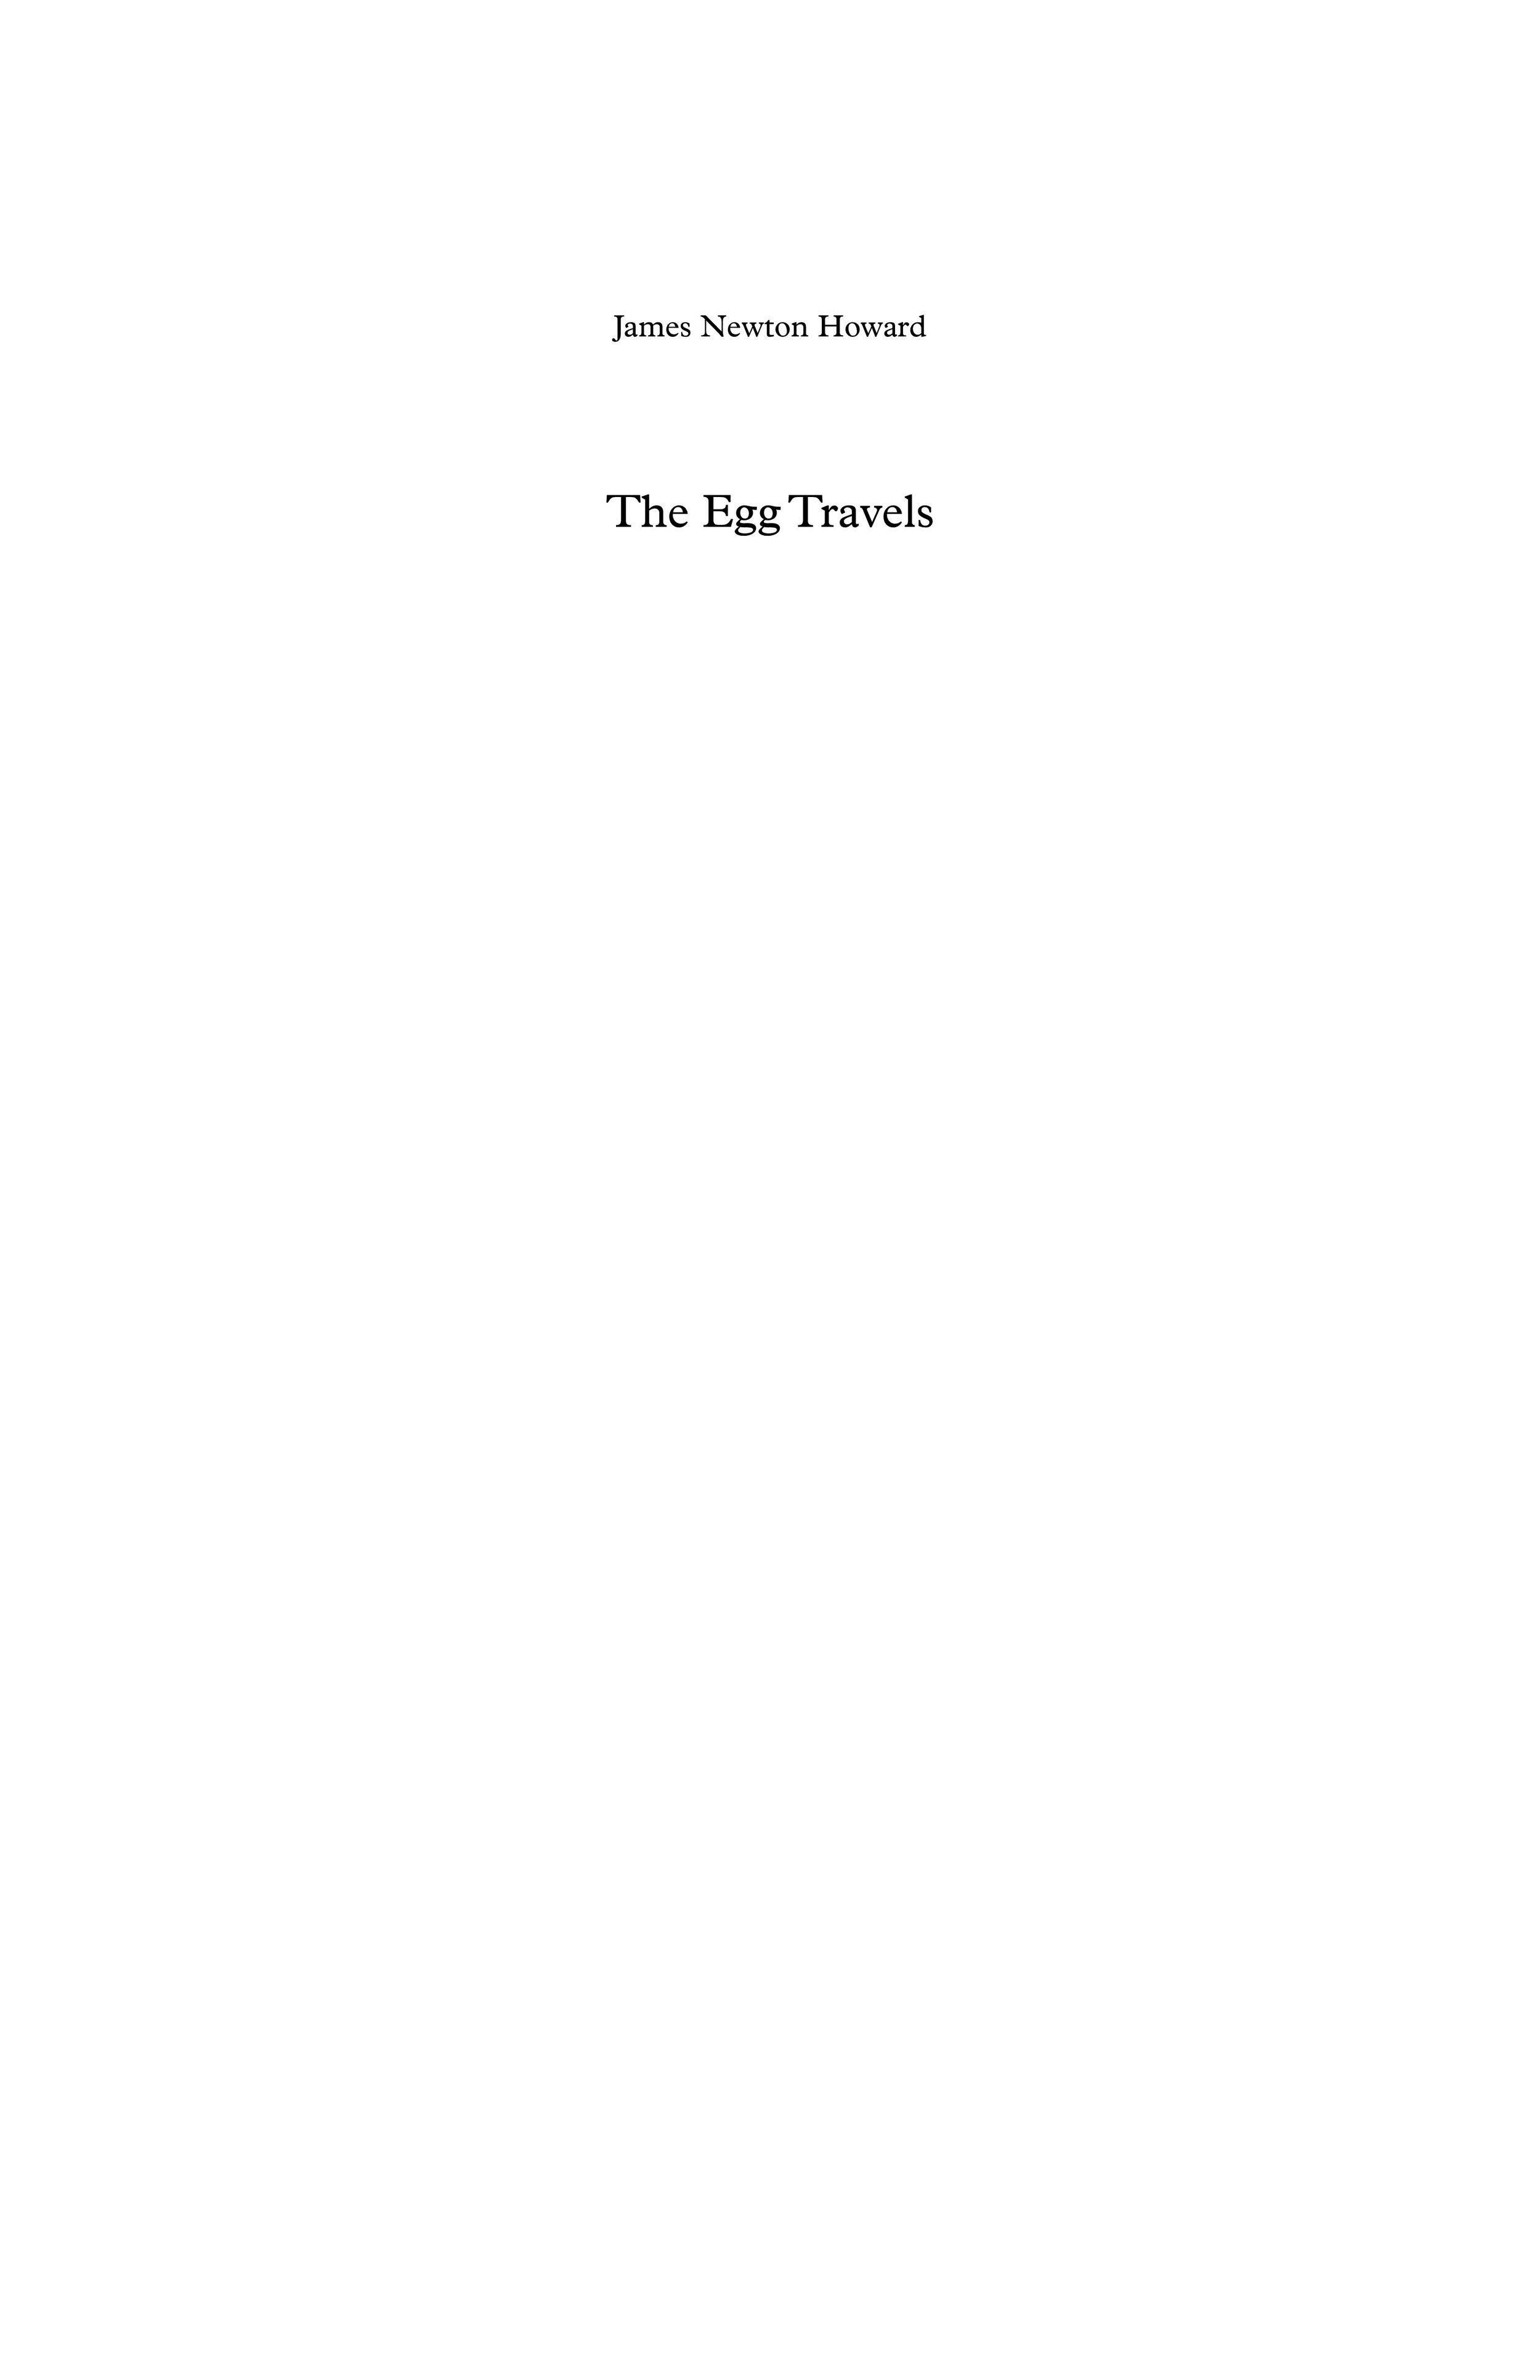 The Egg Travels - Full Score-page-001.jpg